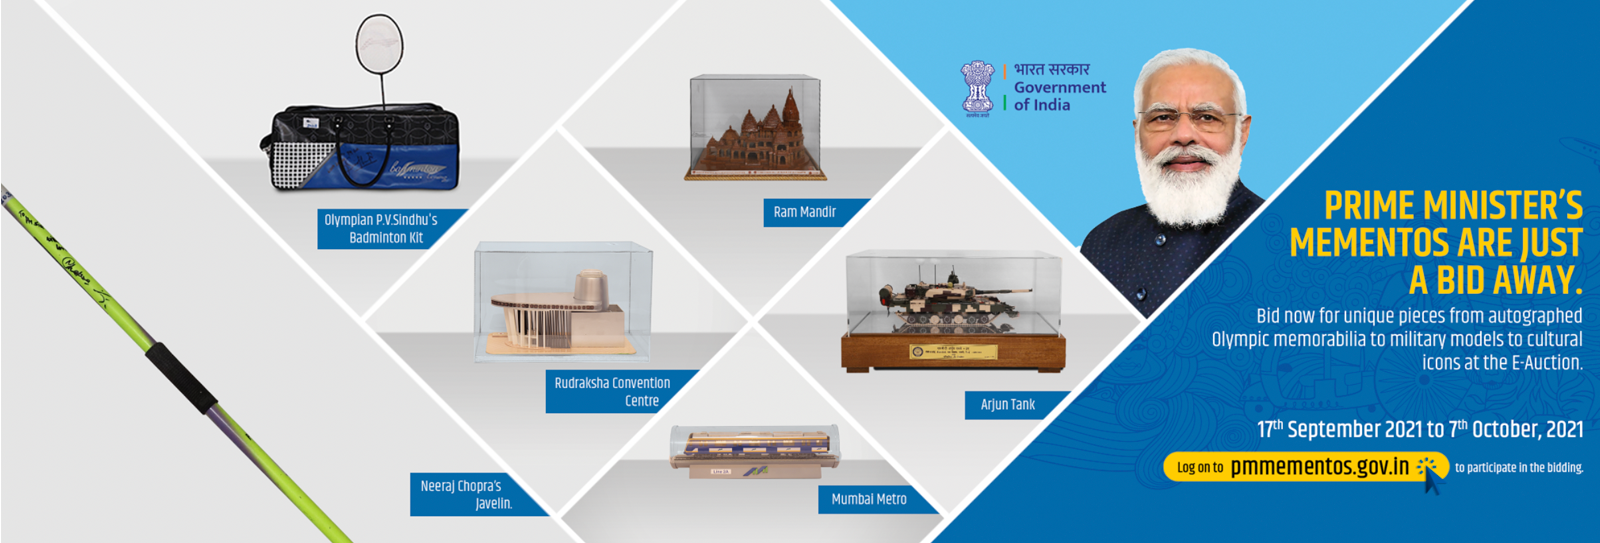 Image of e-Auction of Mementos presented to the Prime Minister